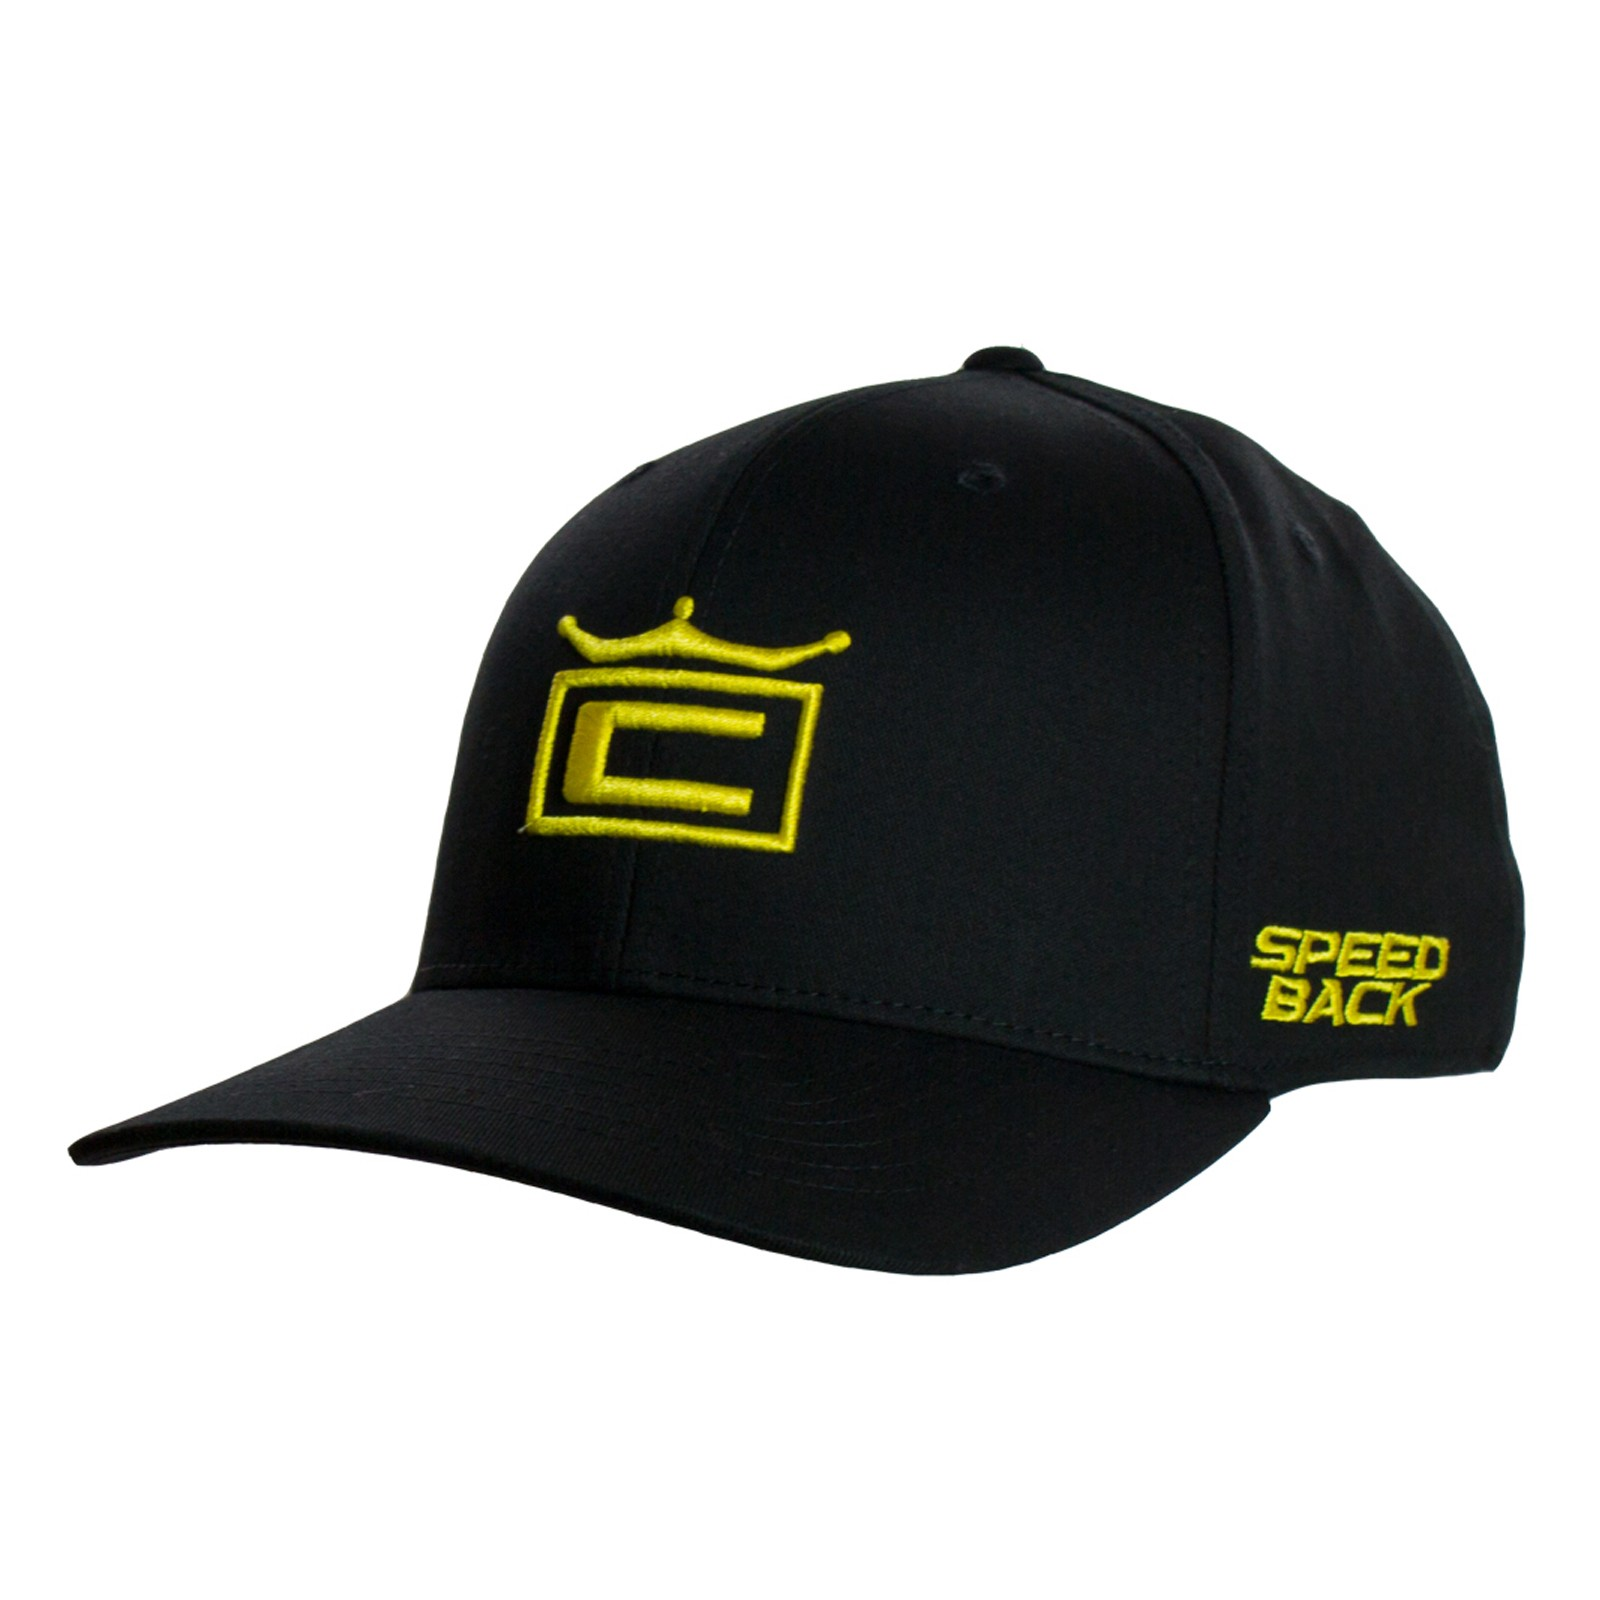 Cobra Tour Crown Speedback Snapback Cap 148fb4cf79f